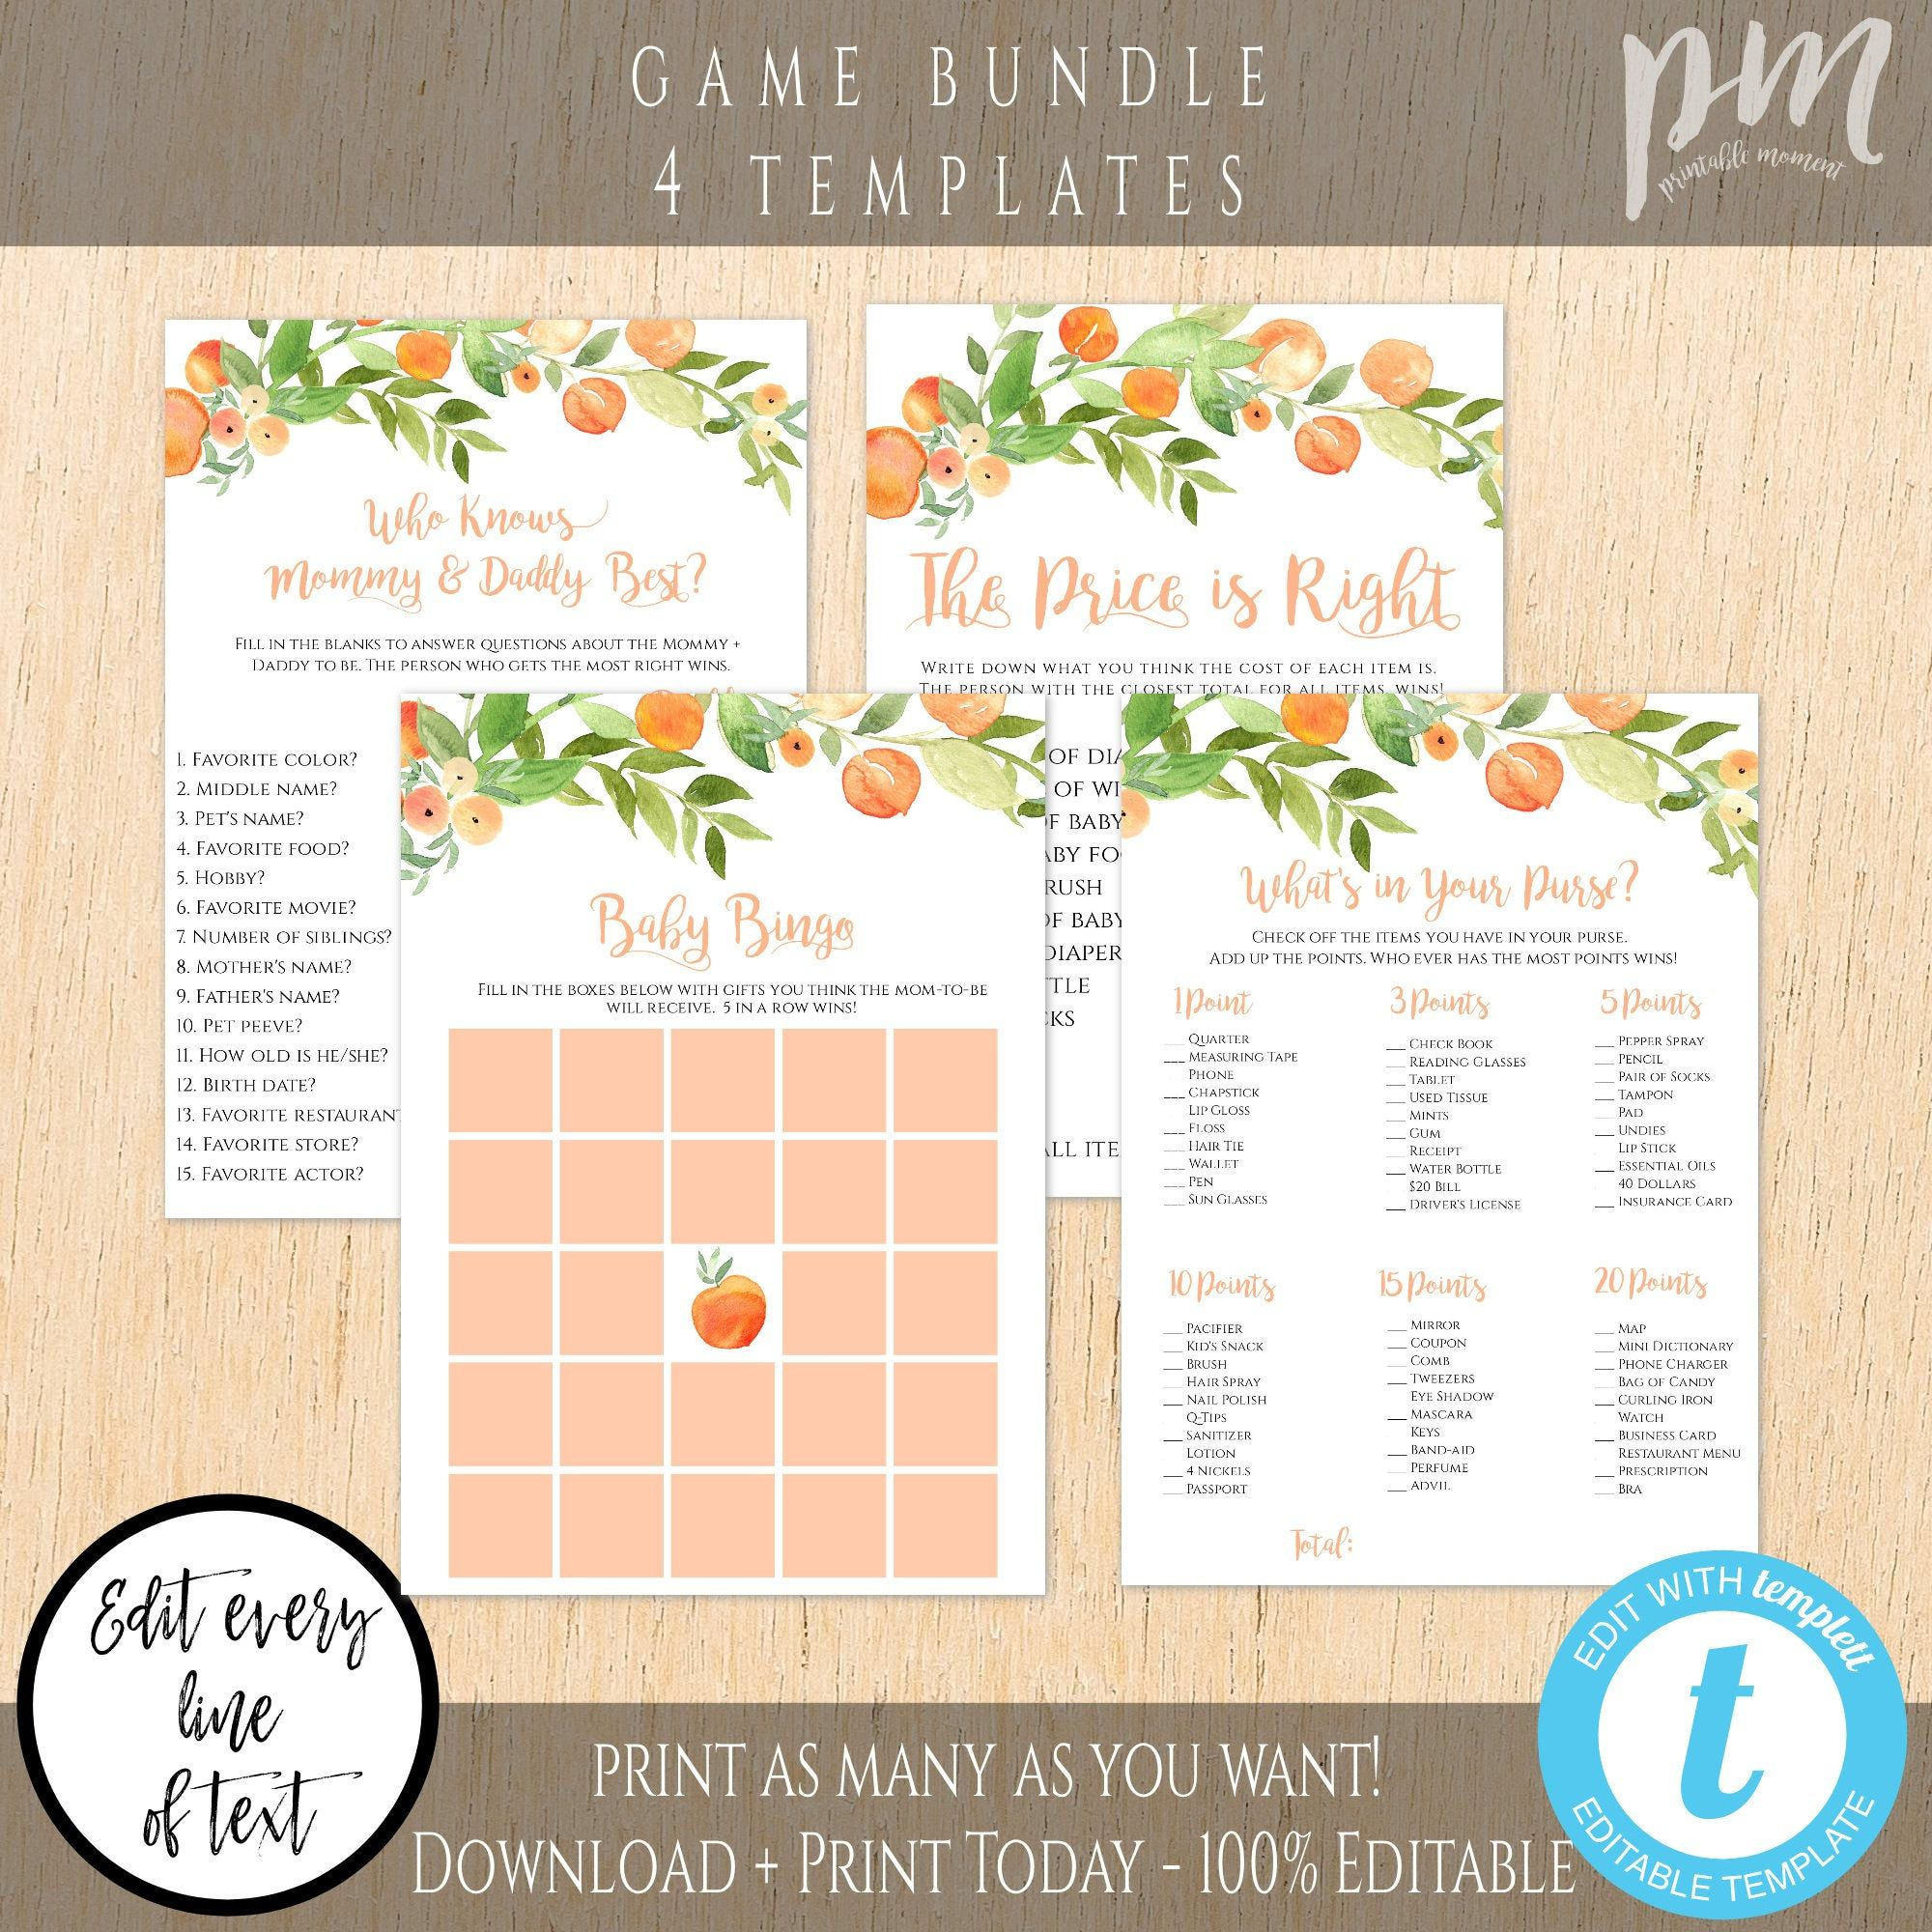 Sweet As A Peach Baby Shower Game Template Set Game Bundle Etsy In 2021 Peach Baby Shower Baby Shower Games Baby Shower